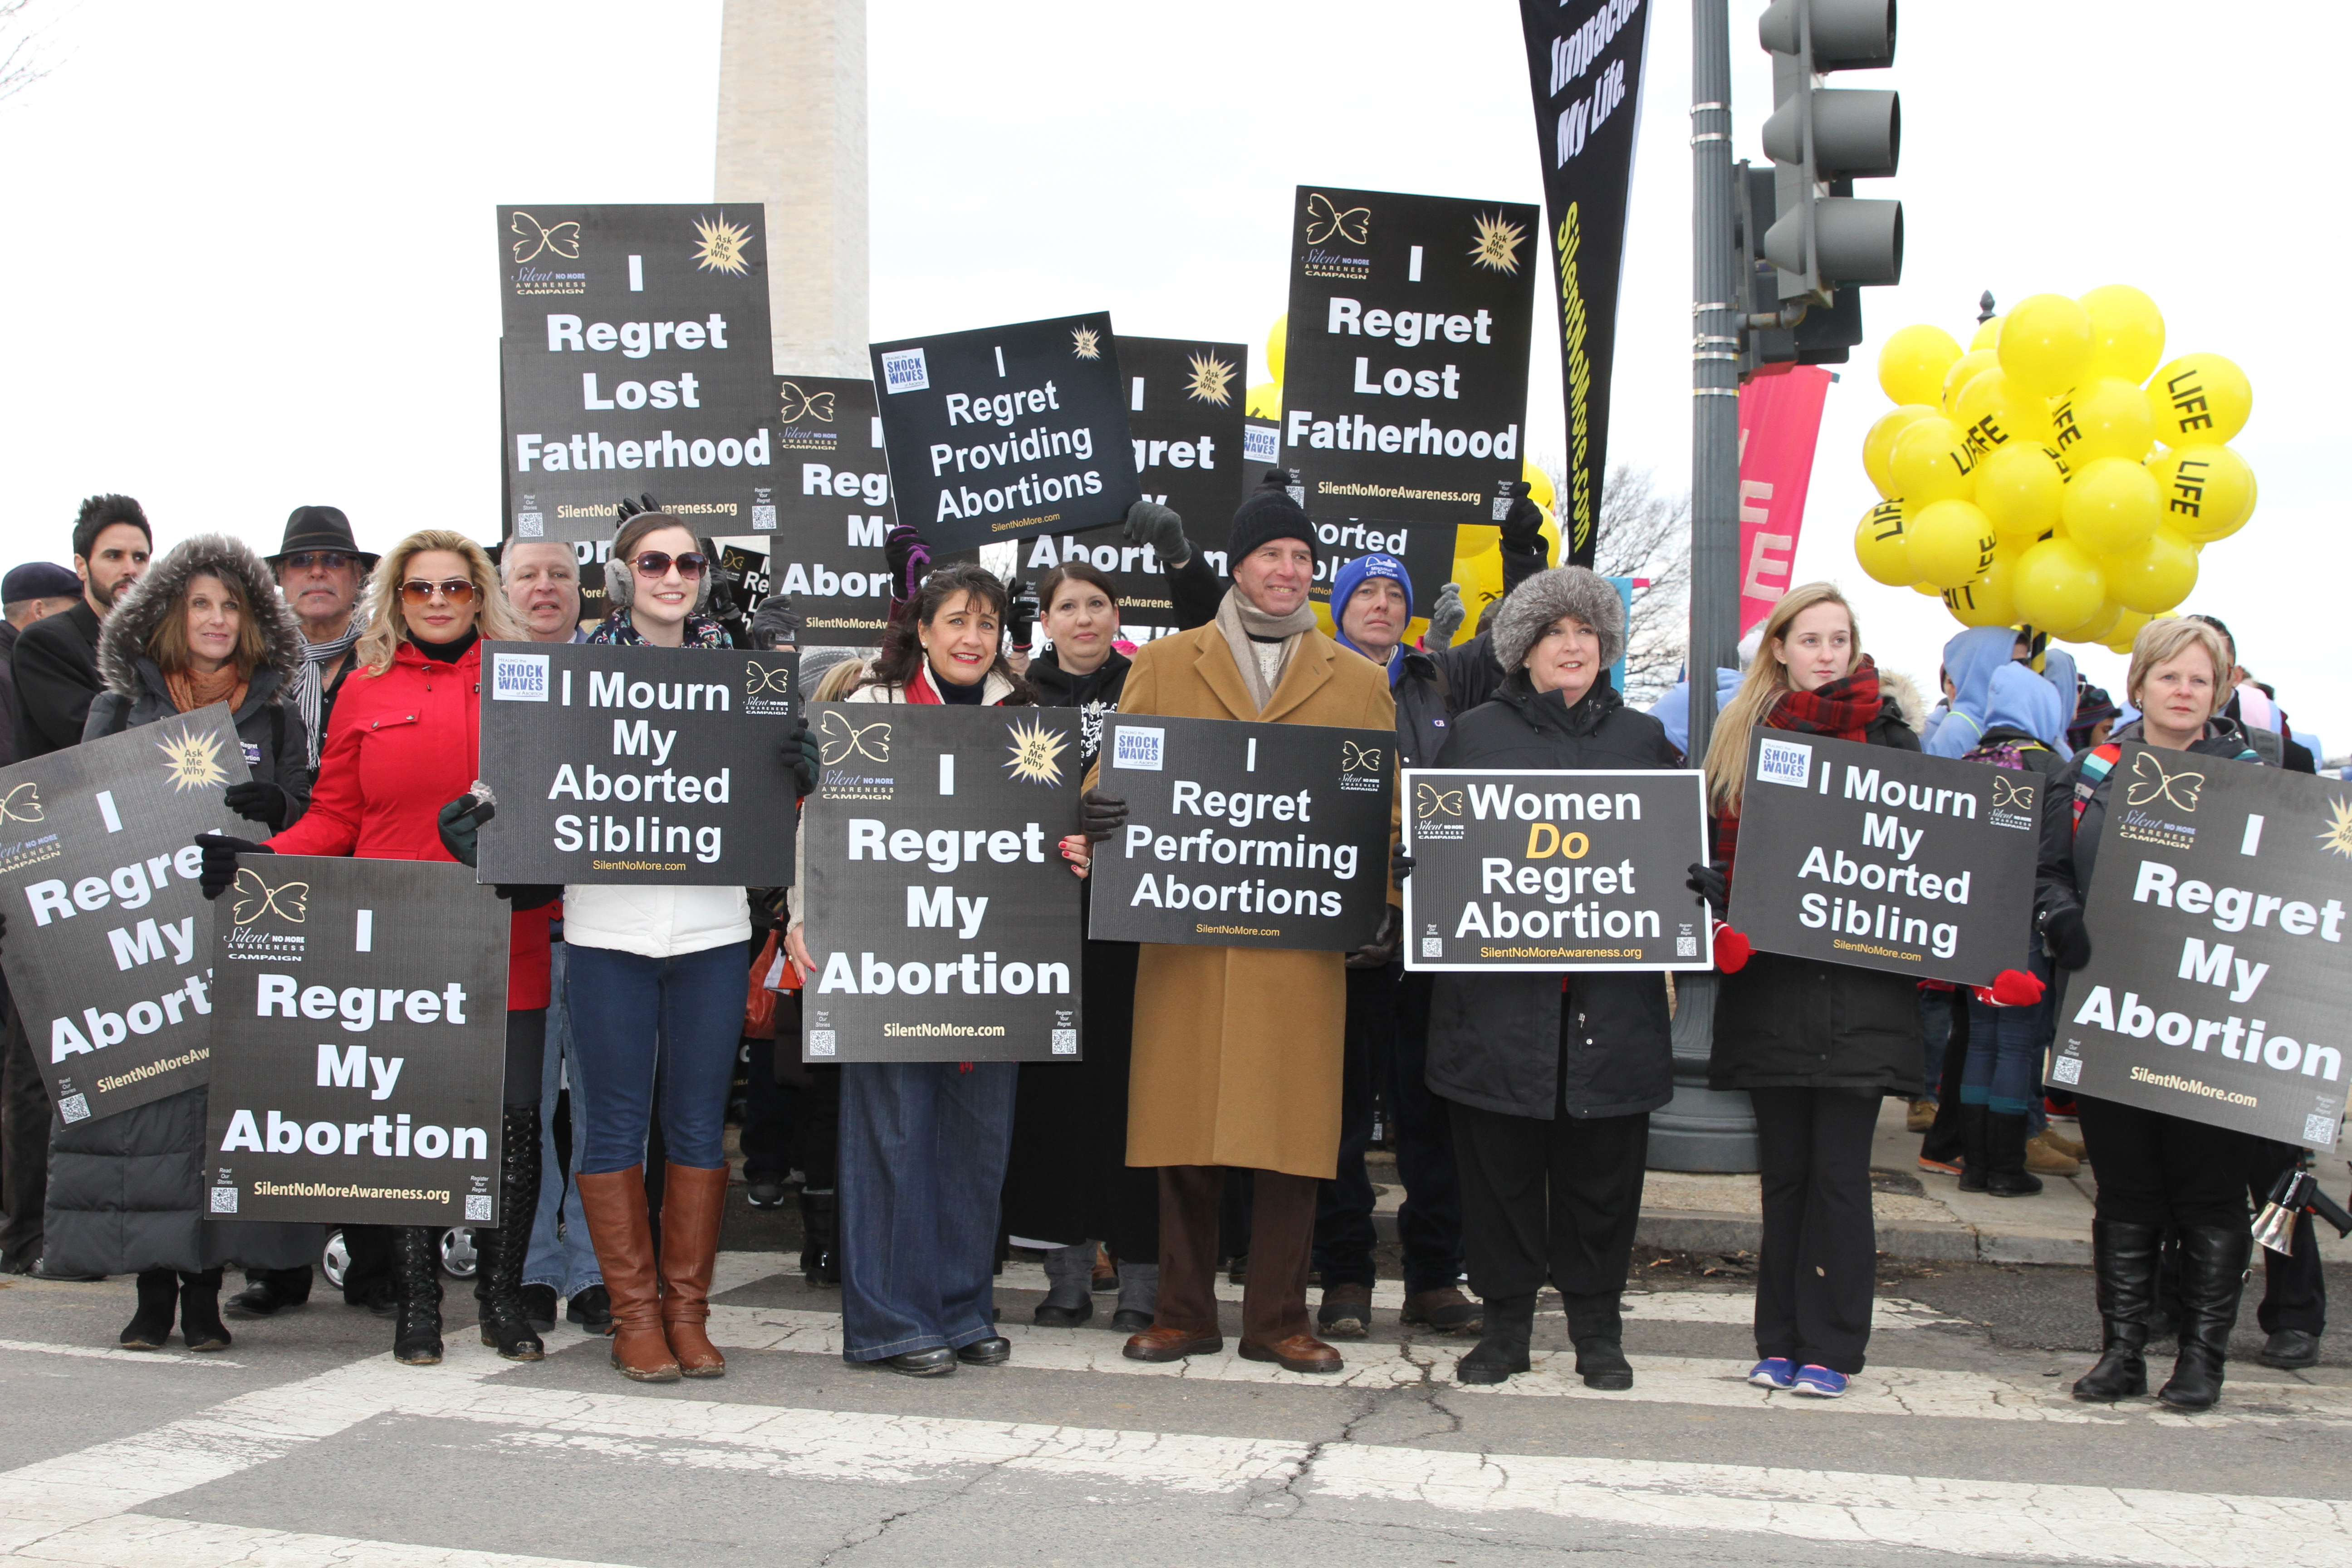 New Pro-Life Message Will Be on Full Display Tomorrow at March for Life